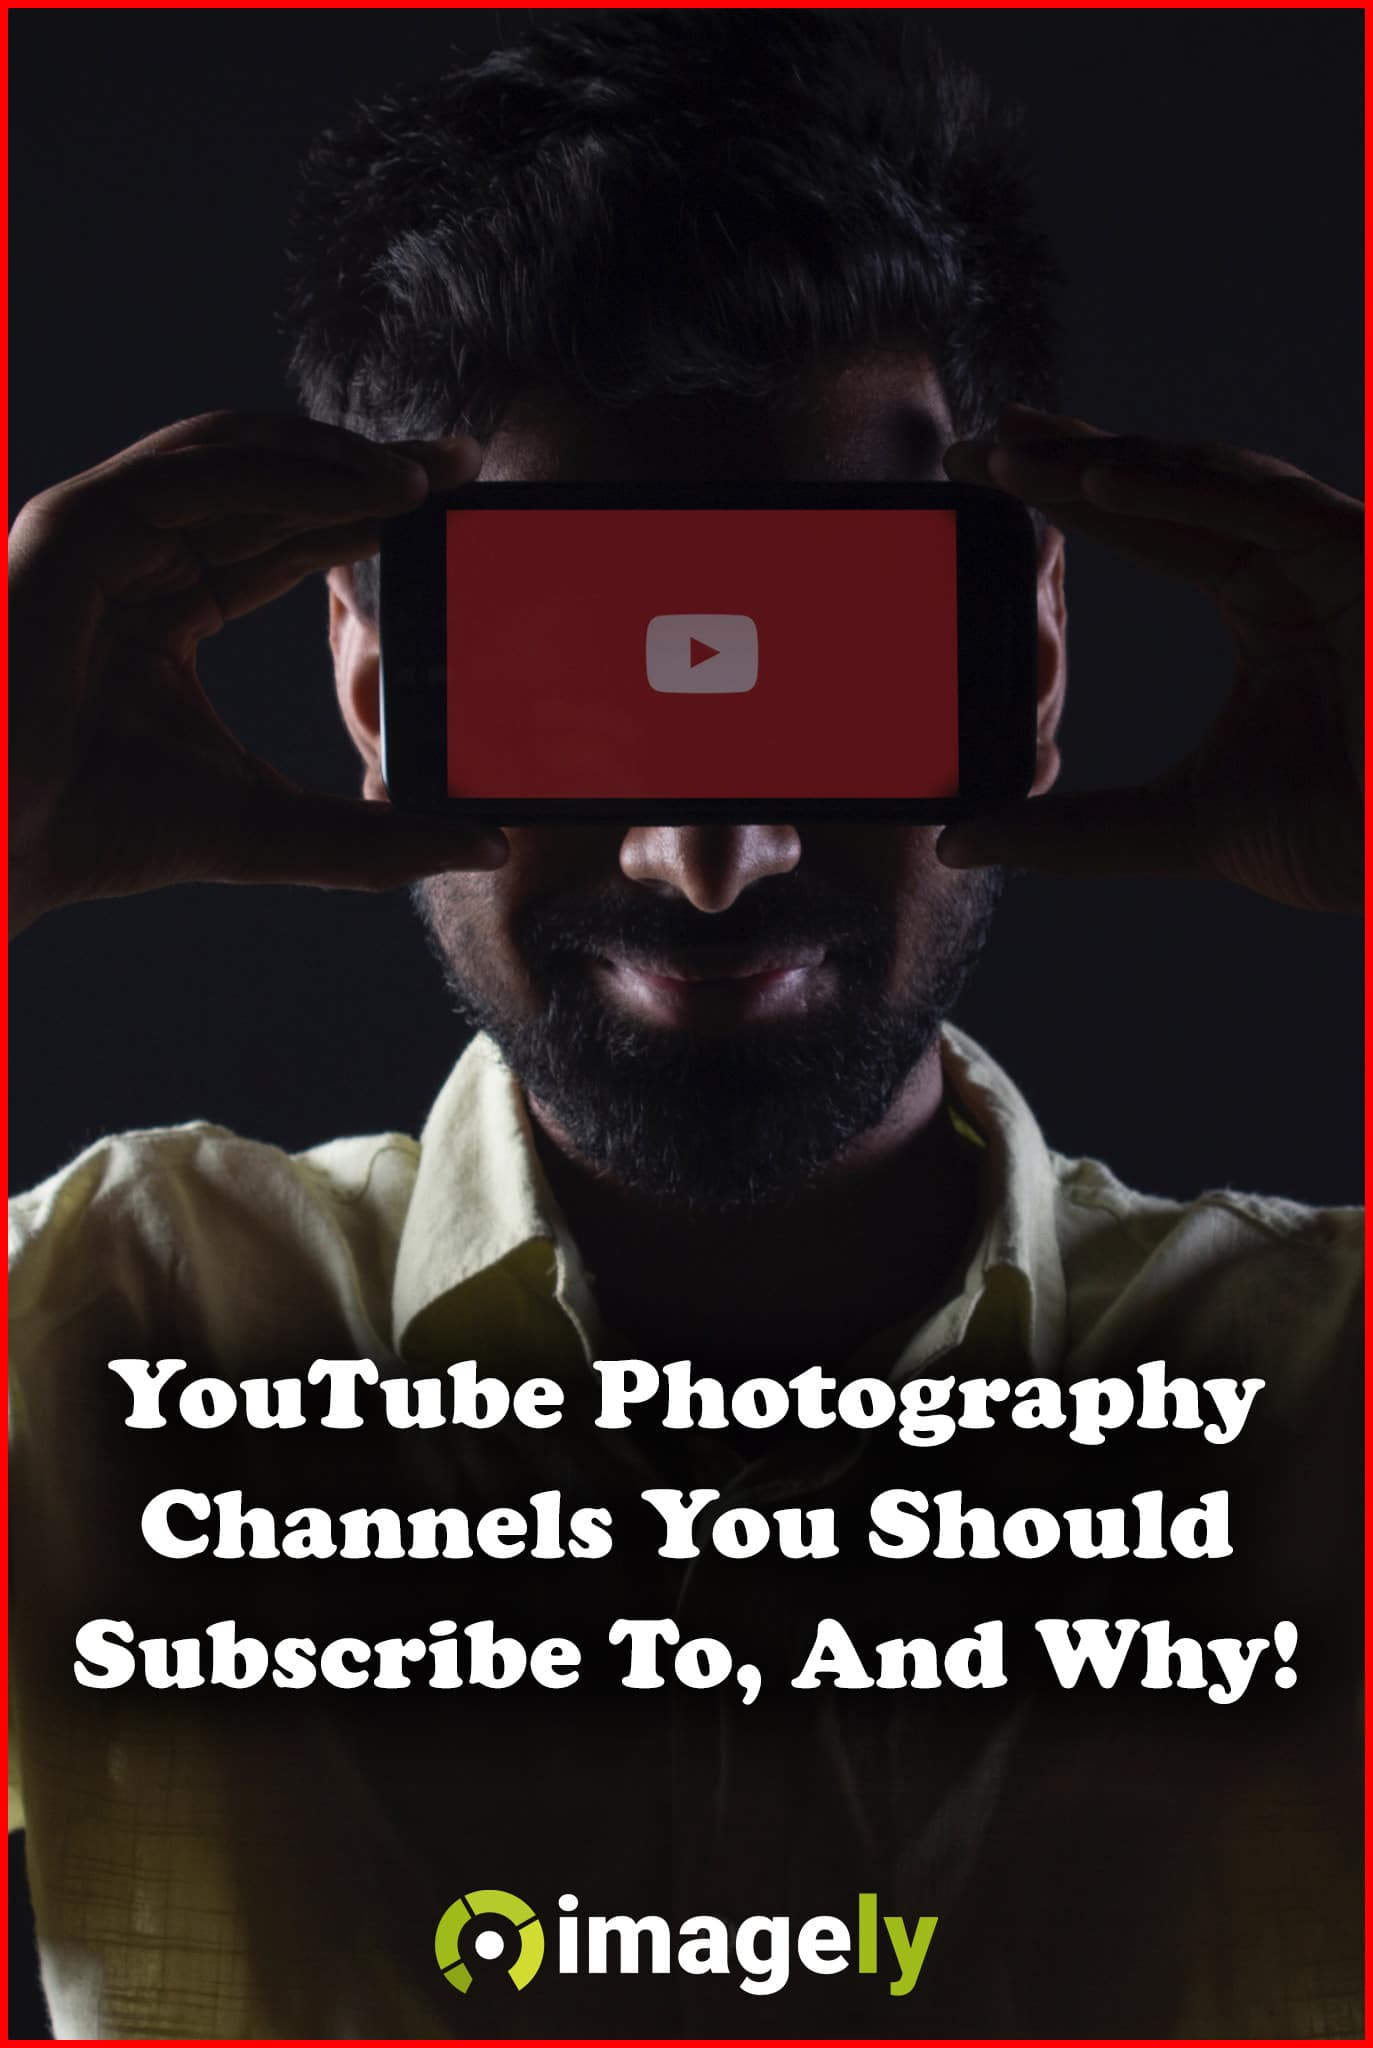 10 YouTube Photography Channels You Should Subscribe To, And Why